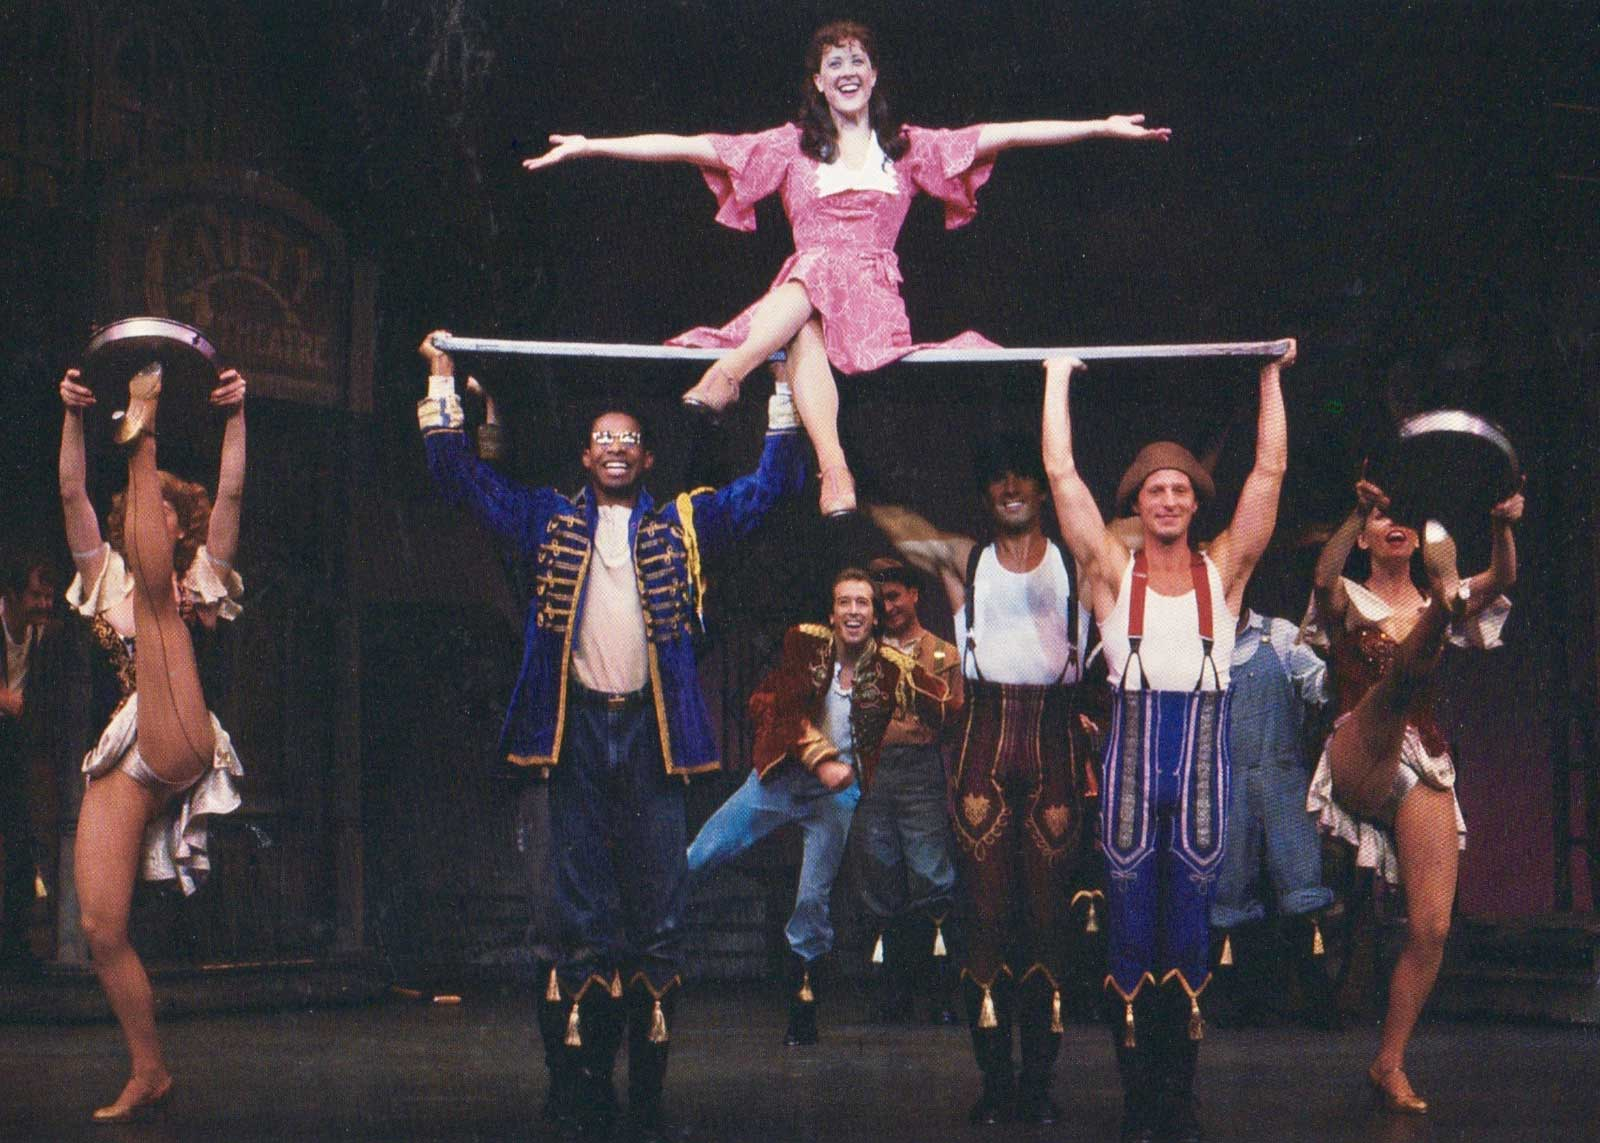 """Polly Baker (Karen Ziemba) opens her arms out wide and sits on a plank that is lifted by three men in the musical number """"I Got Rhythm"""""""